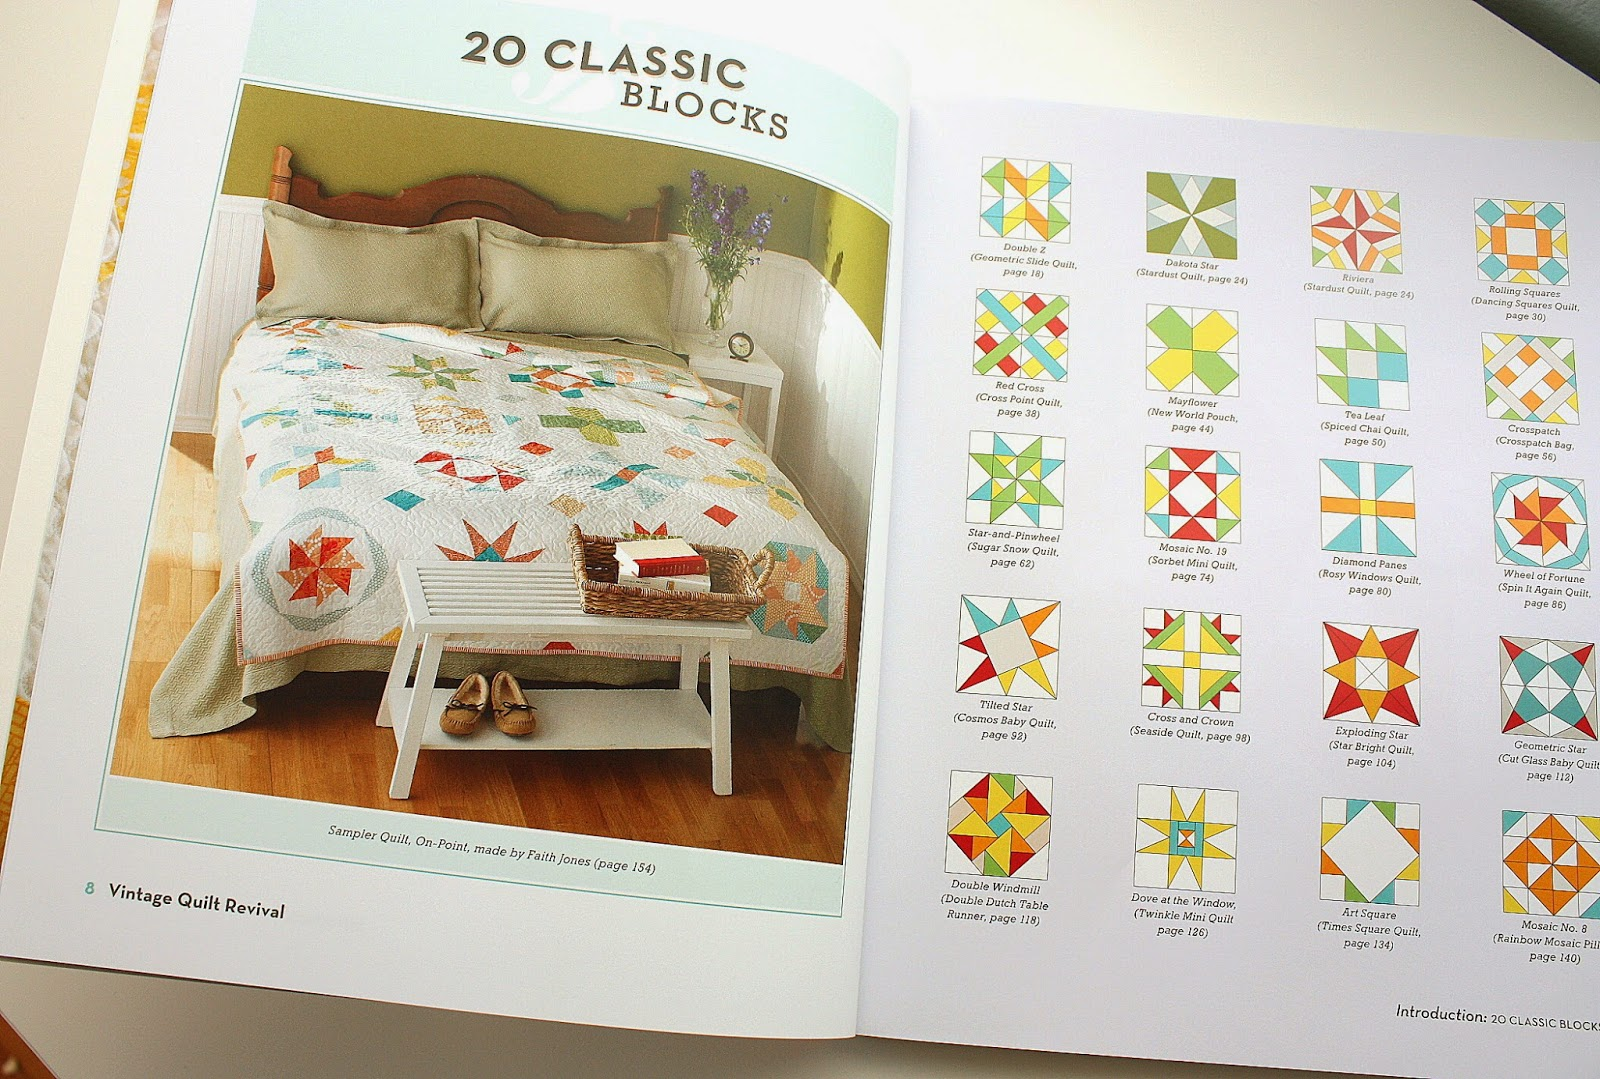 Vintage Quilt Revival gorgeous quilts - Diary of a Quilter - a ... : vintage quilt blocks - Adamdwight.com